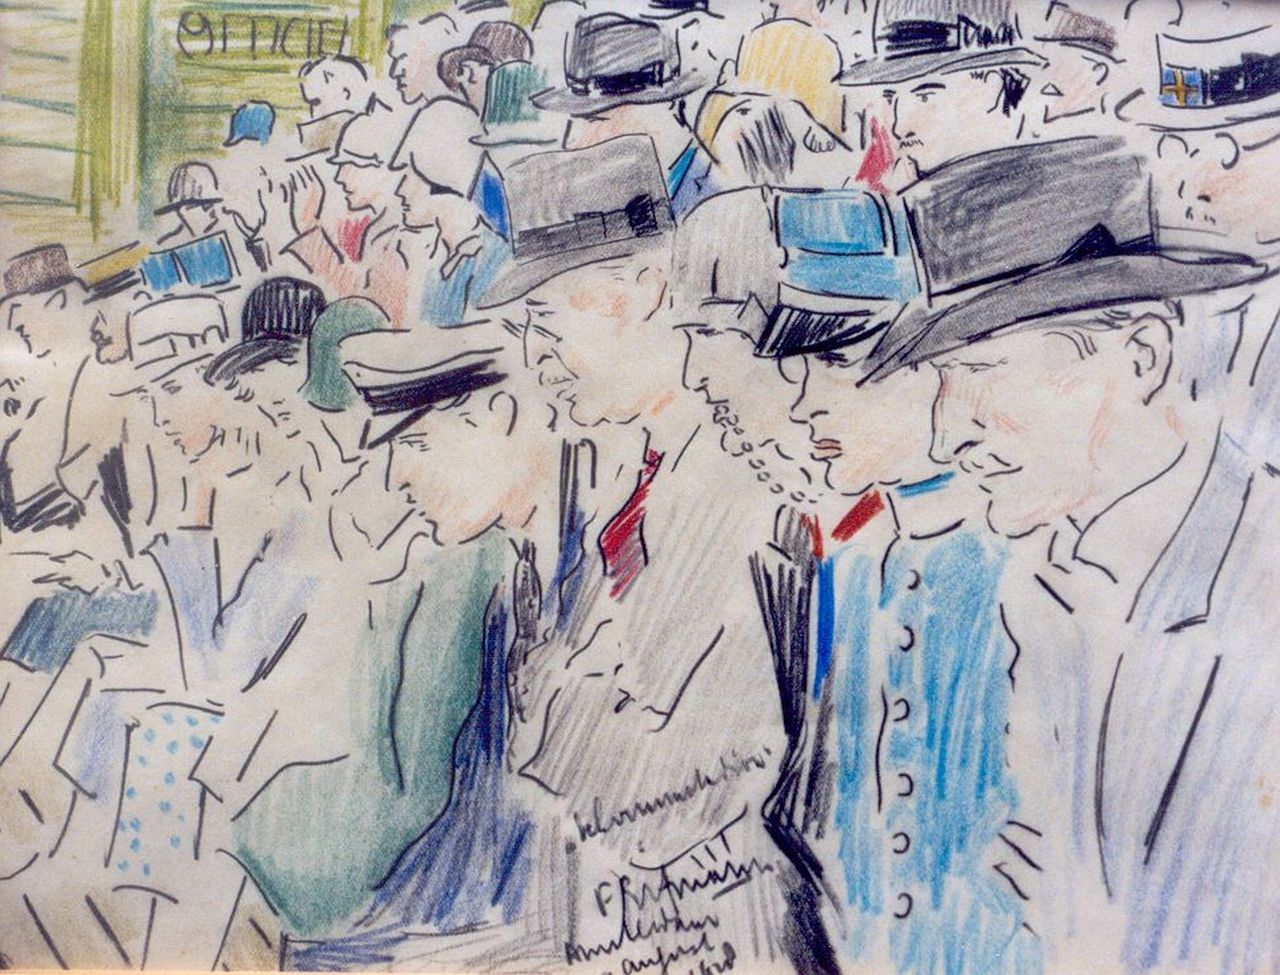 Ferdinand Erfmann | Spectators, chalk on paper, 21.3 x 27.4 cm, signed l.c. and executed on 'August 9th 1928 Amsterdam'